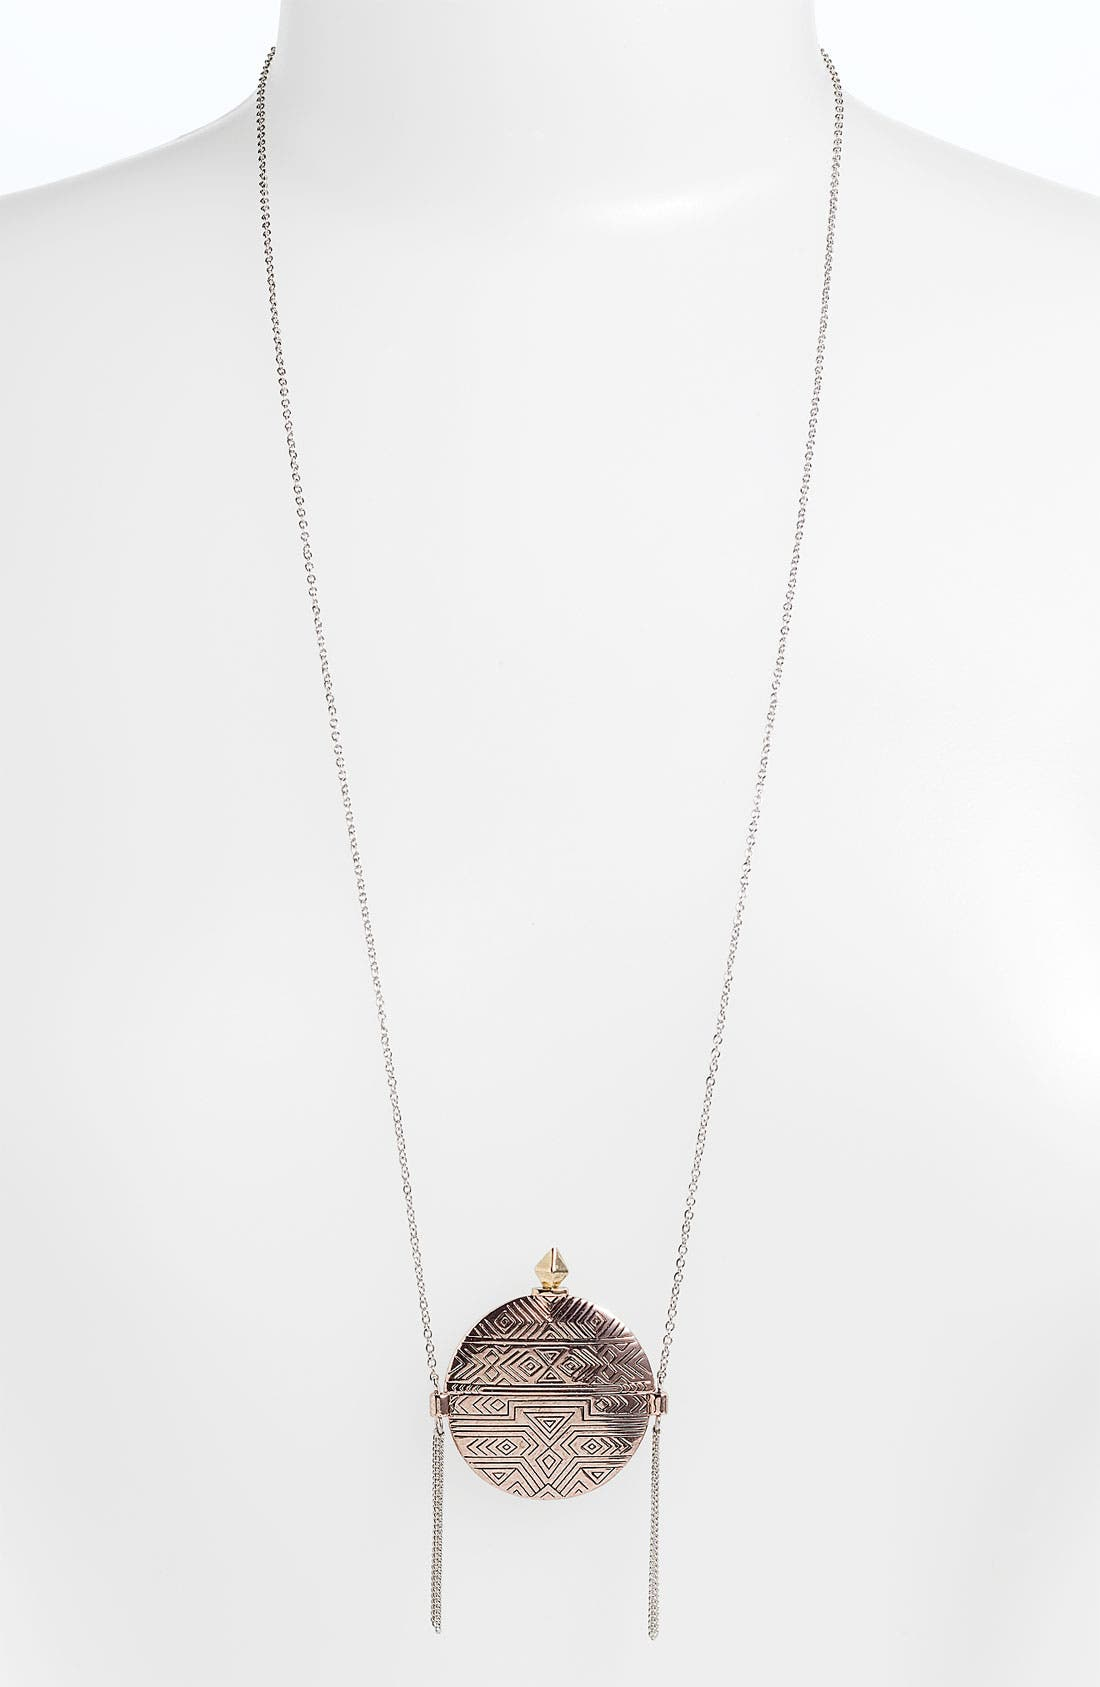 Alternate Image 1 Selected - House of Harlow 1960 Engraved Medallion Necklace